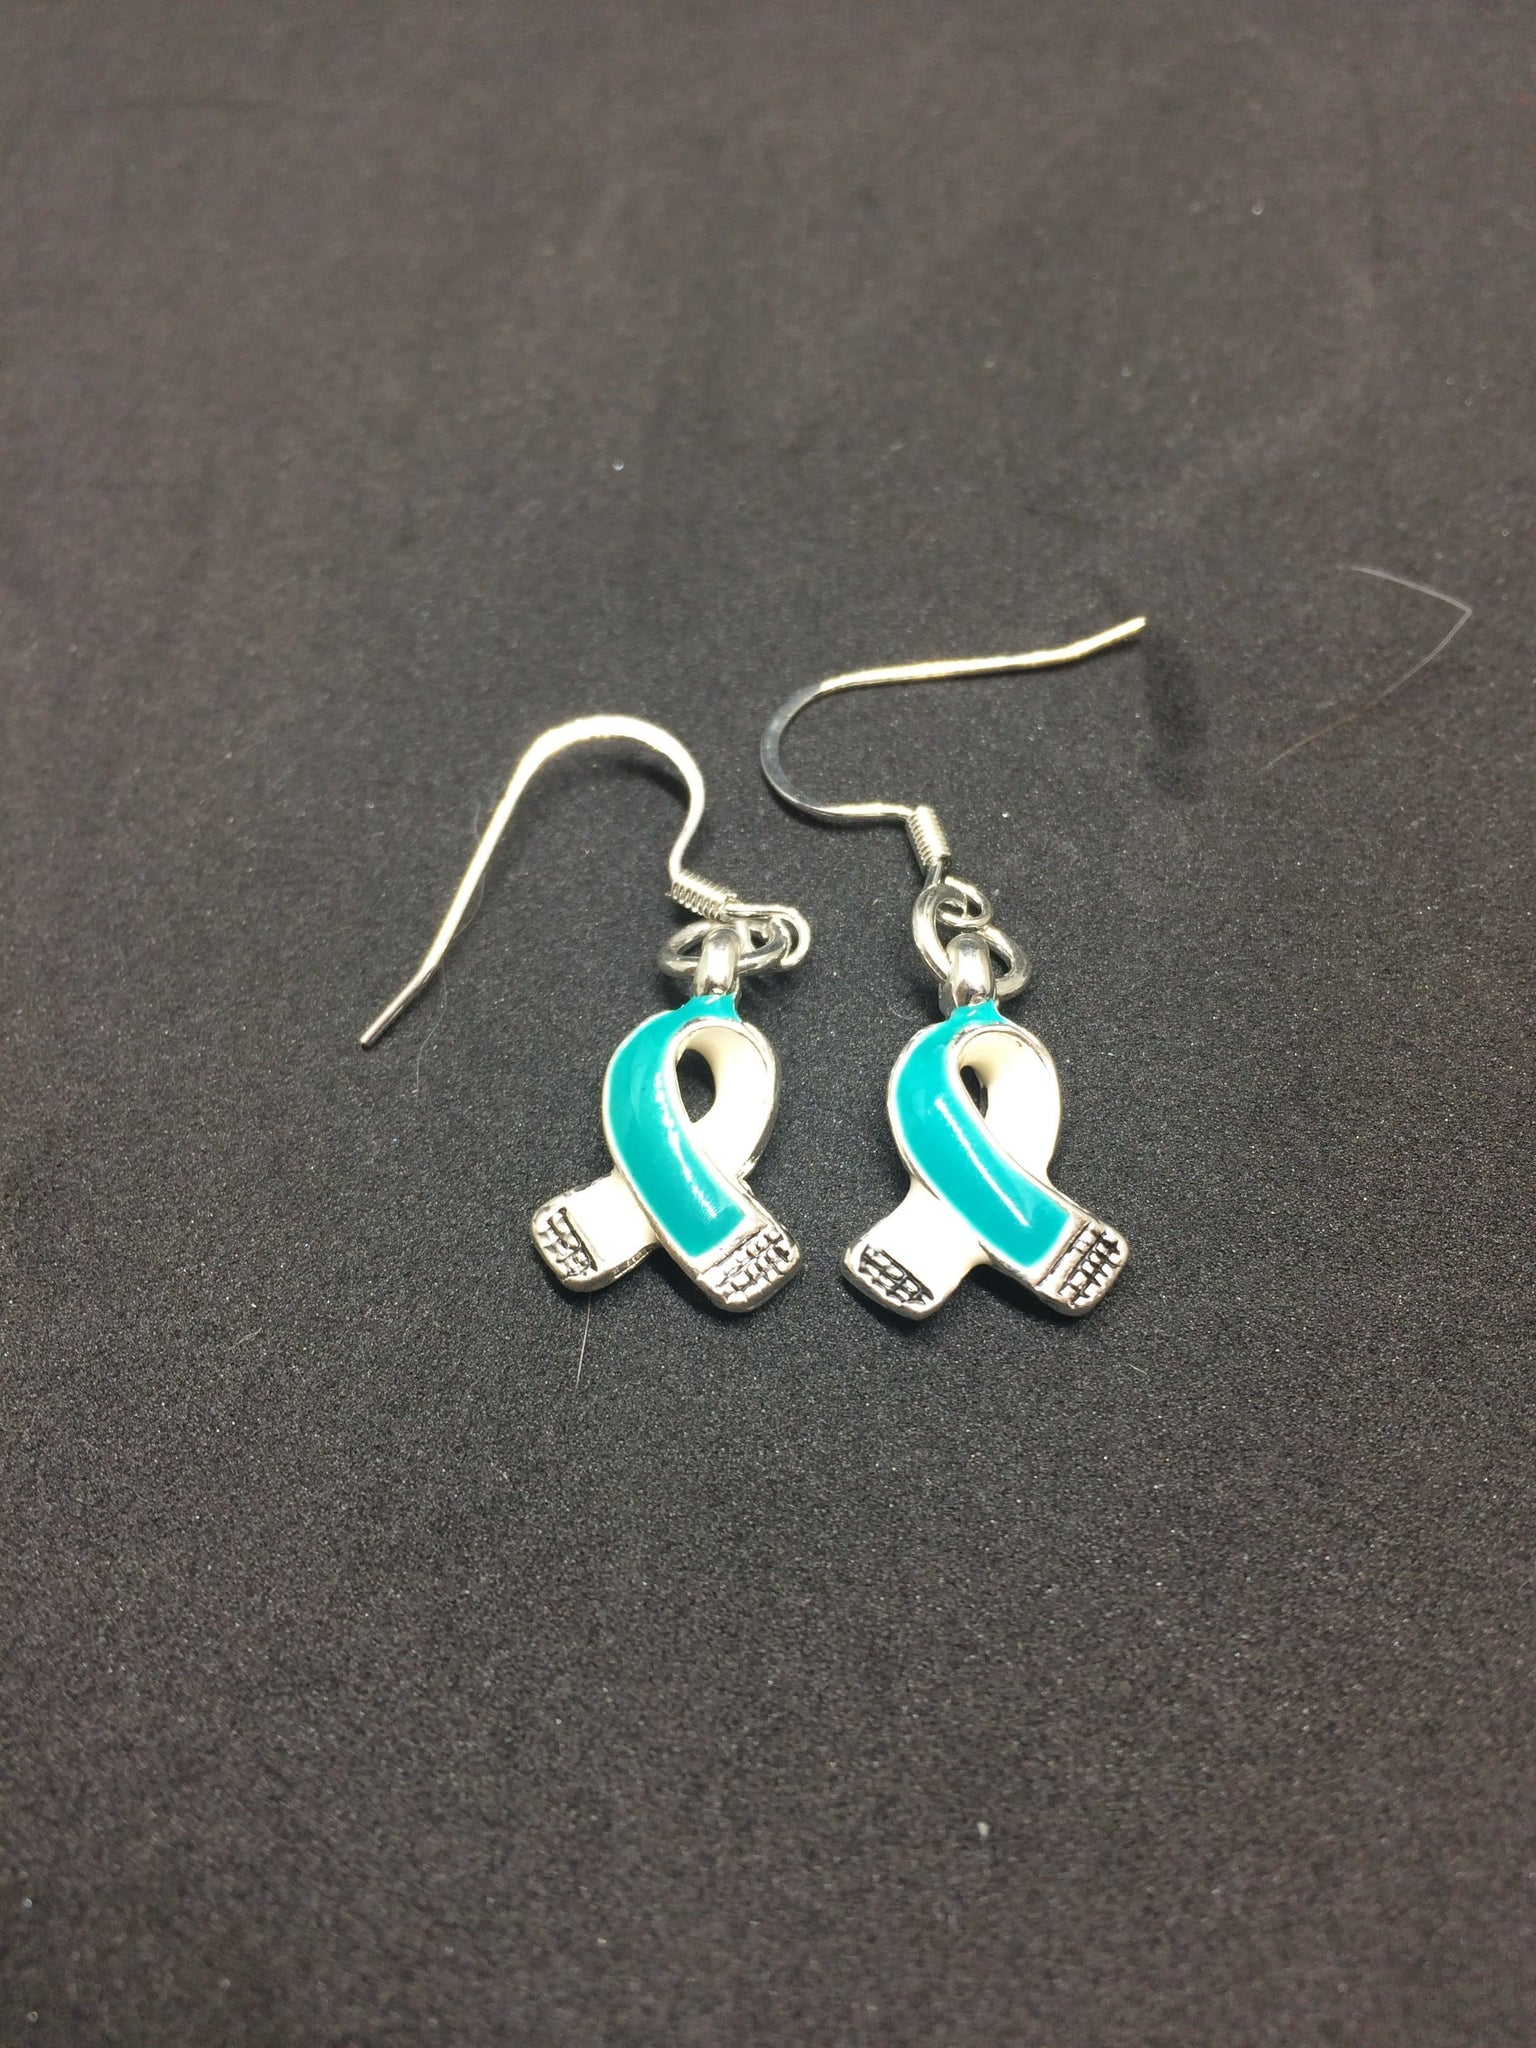 Teal ribbon charm earrings for cancer awareness the house of teal ribbon charm earrings for cancer awareness the house of awareness buycottarizona